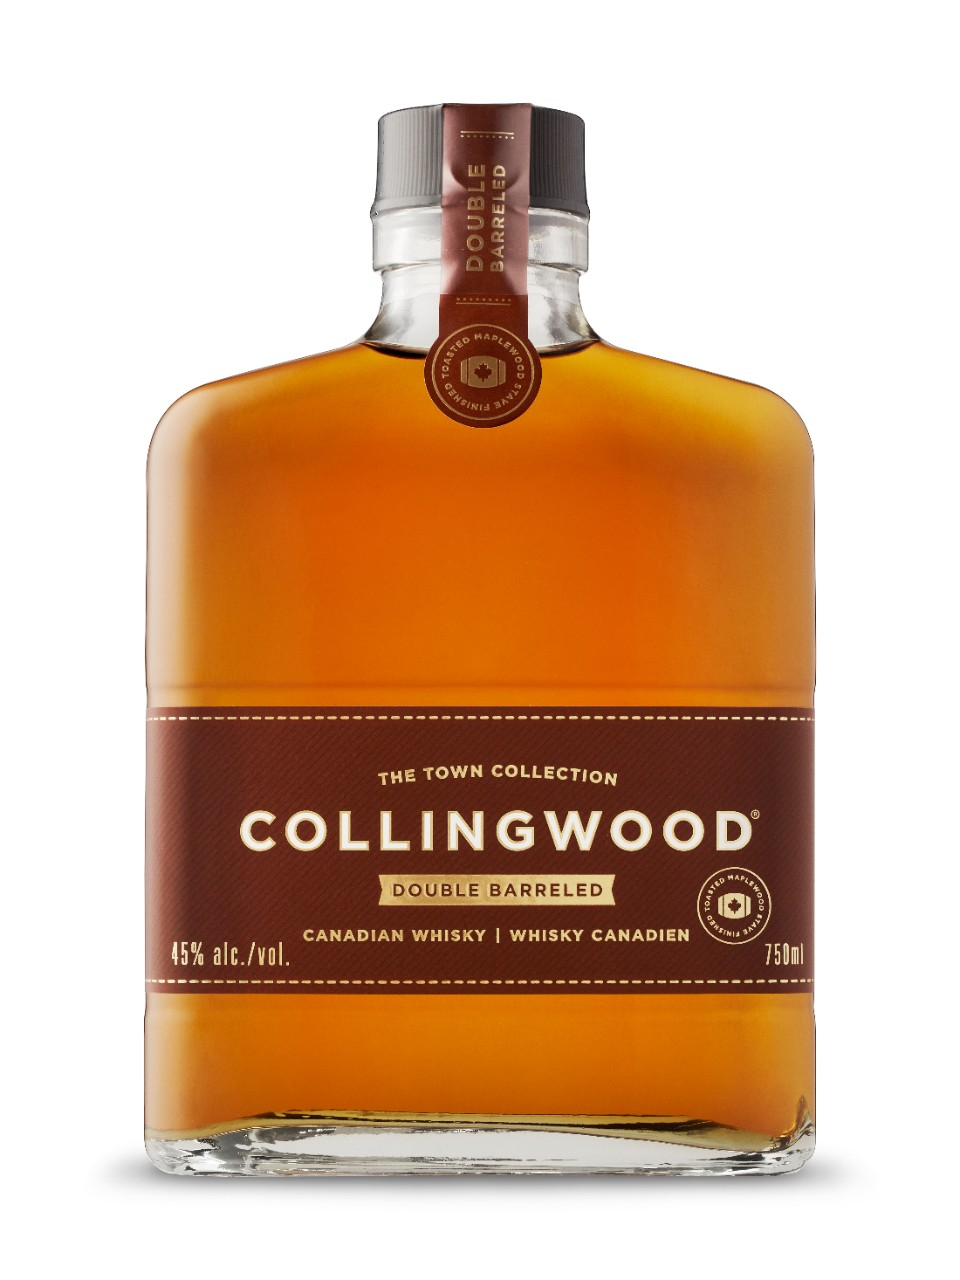 Collingwood Double Barrel Whisky from LCBO